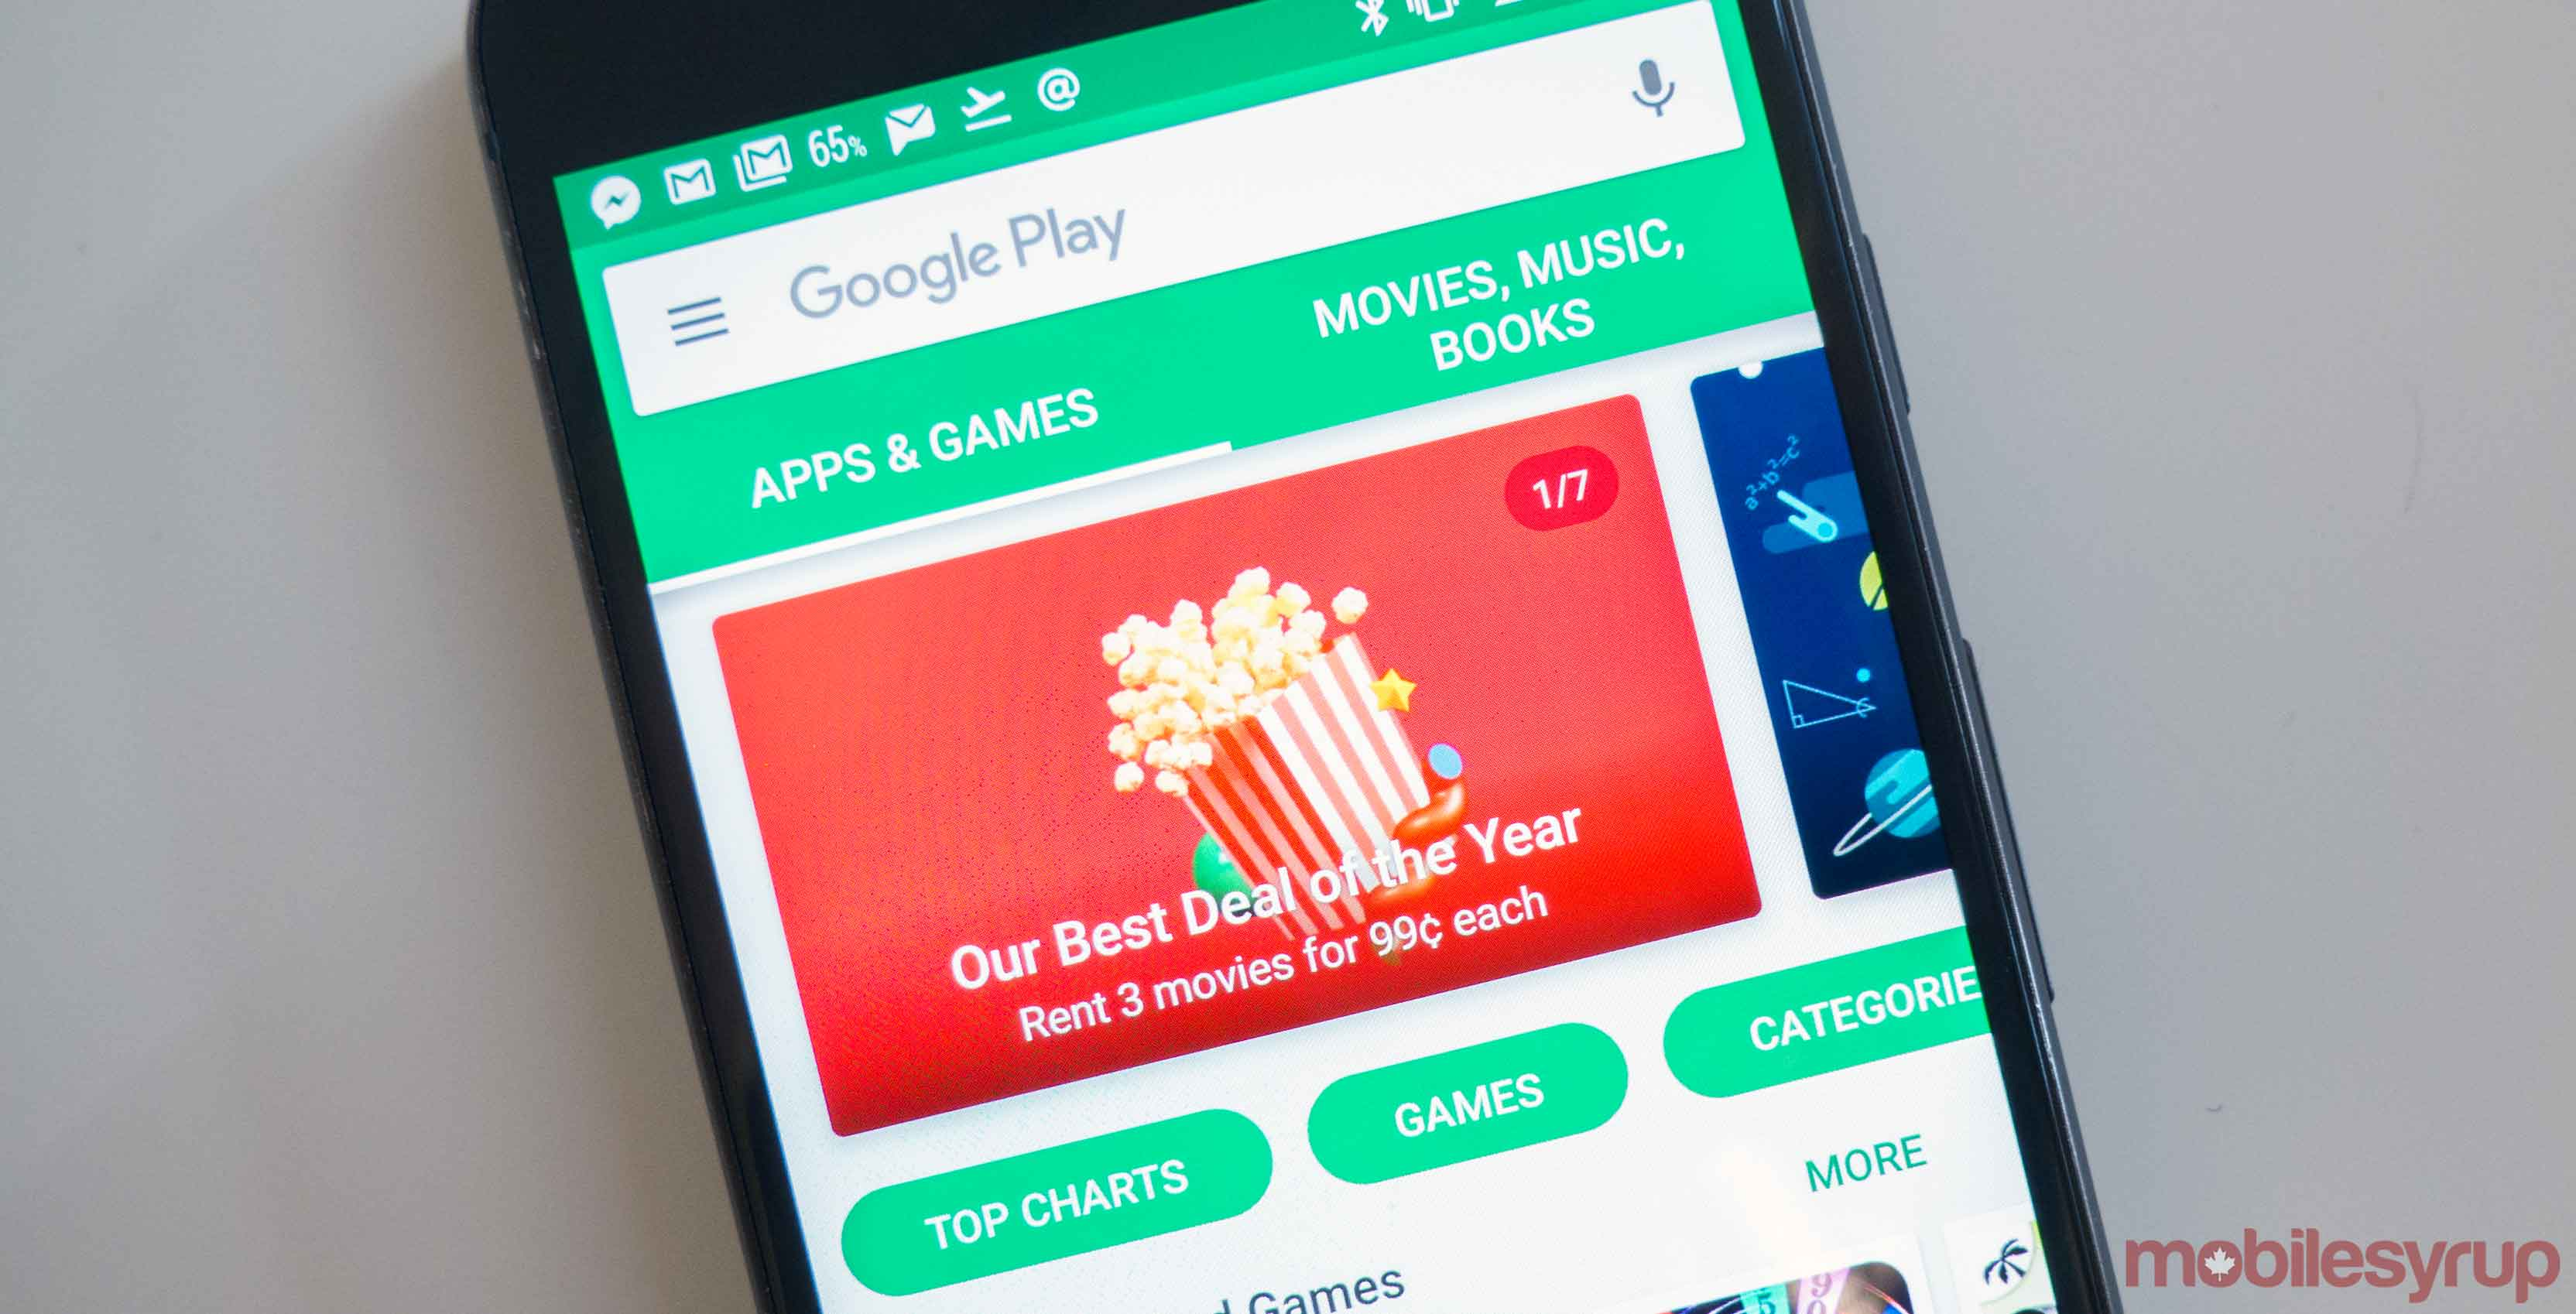 Google Play Store storefront